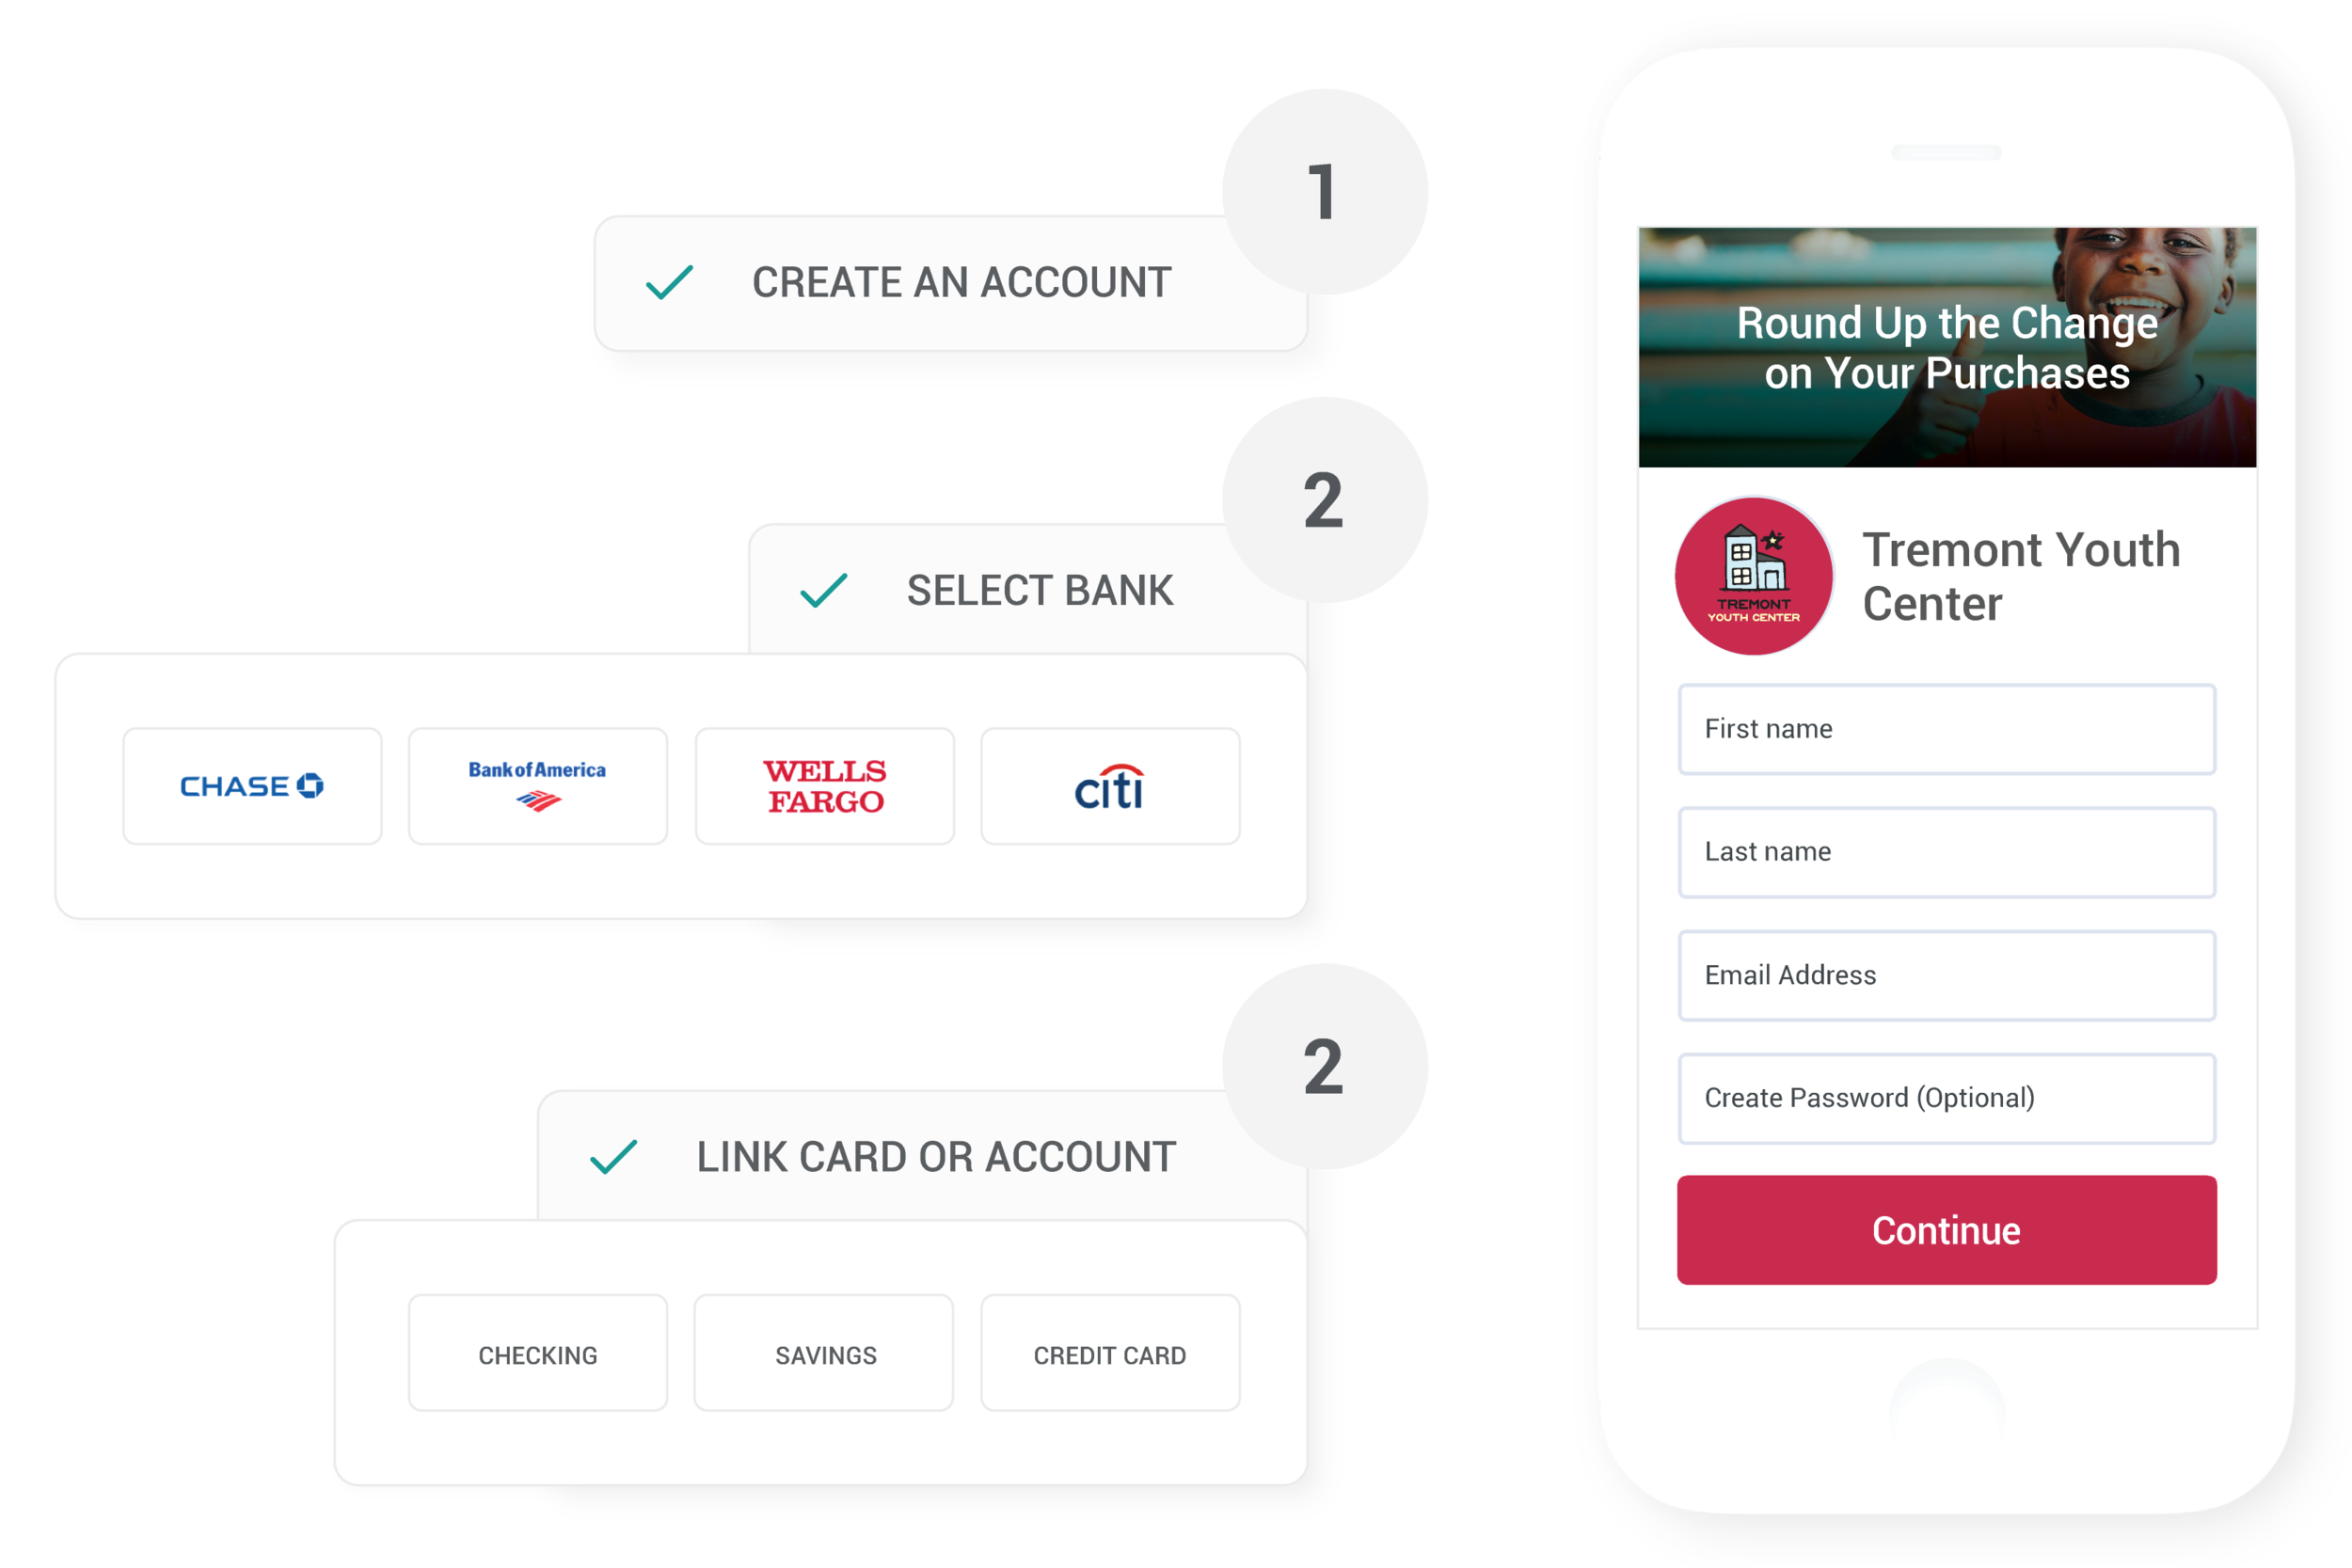 Sign up in seconds - Donors sign up to give their spare change with three simple steps. We'll track the transactions on the linked account and trigger a donation when the change accumulates to $5.